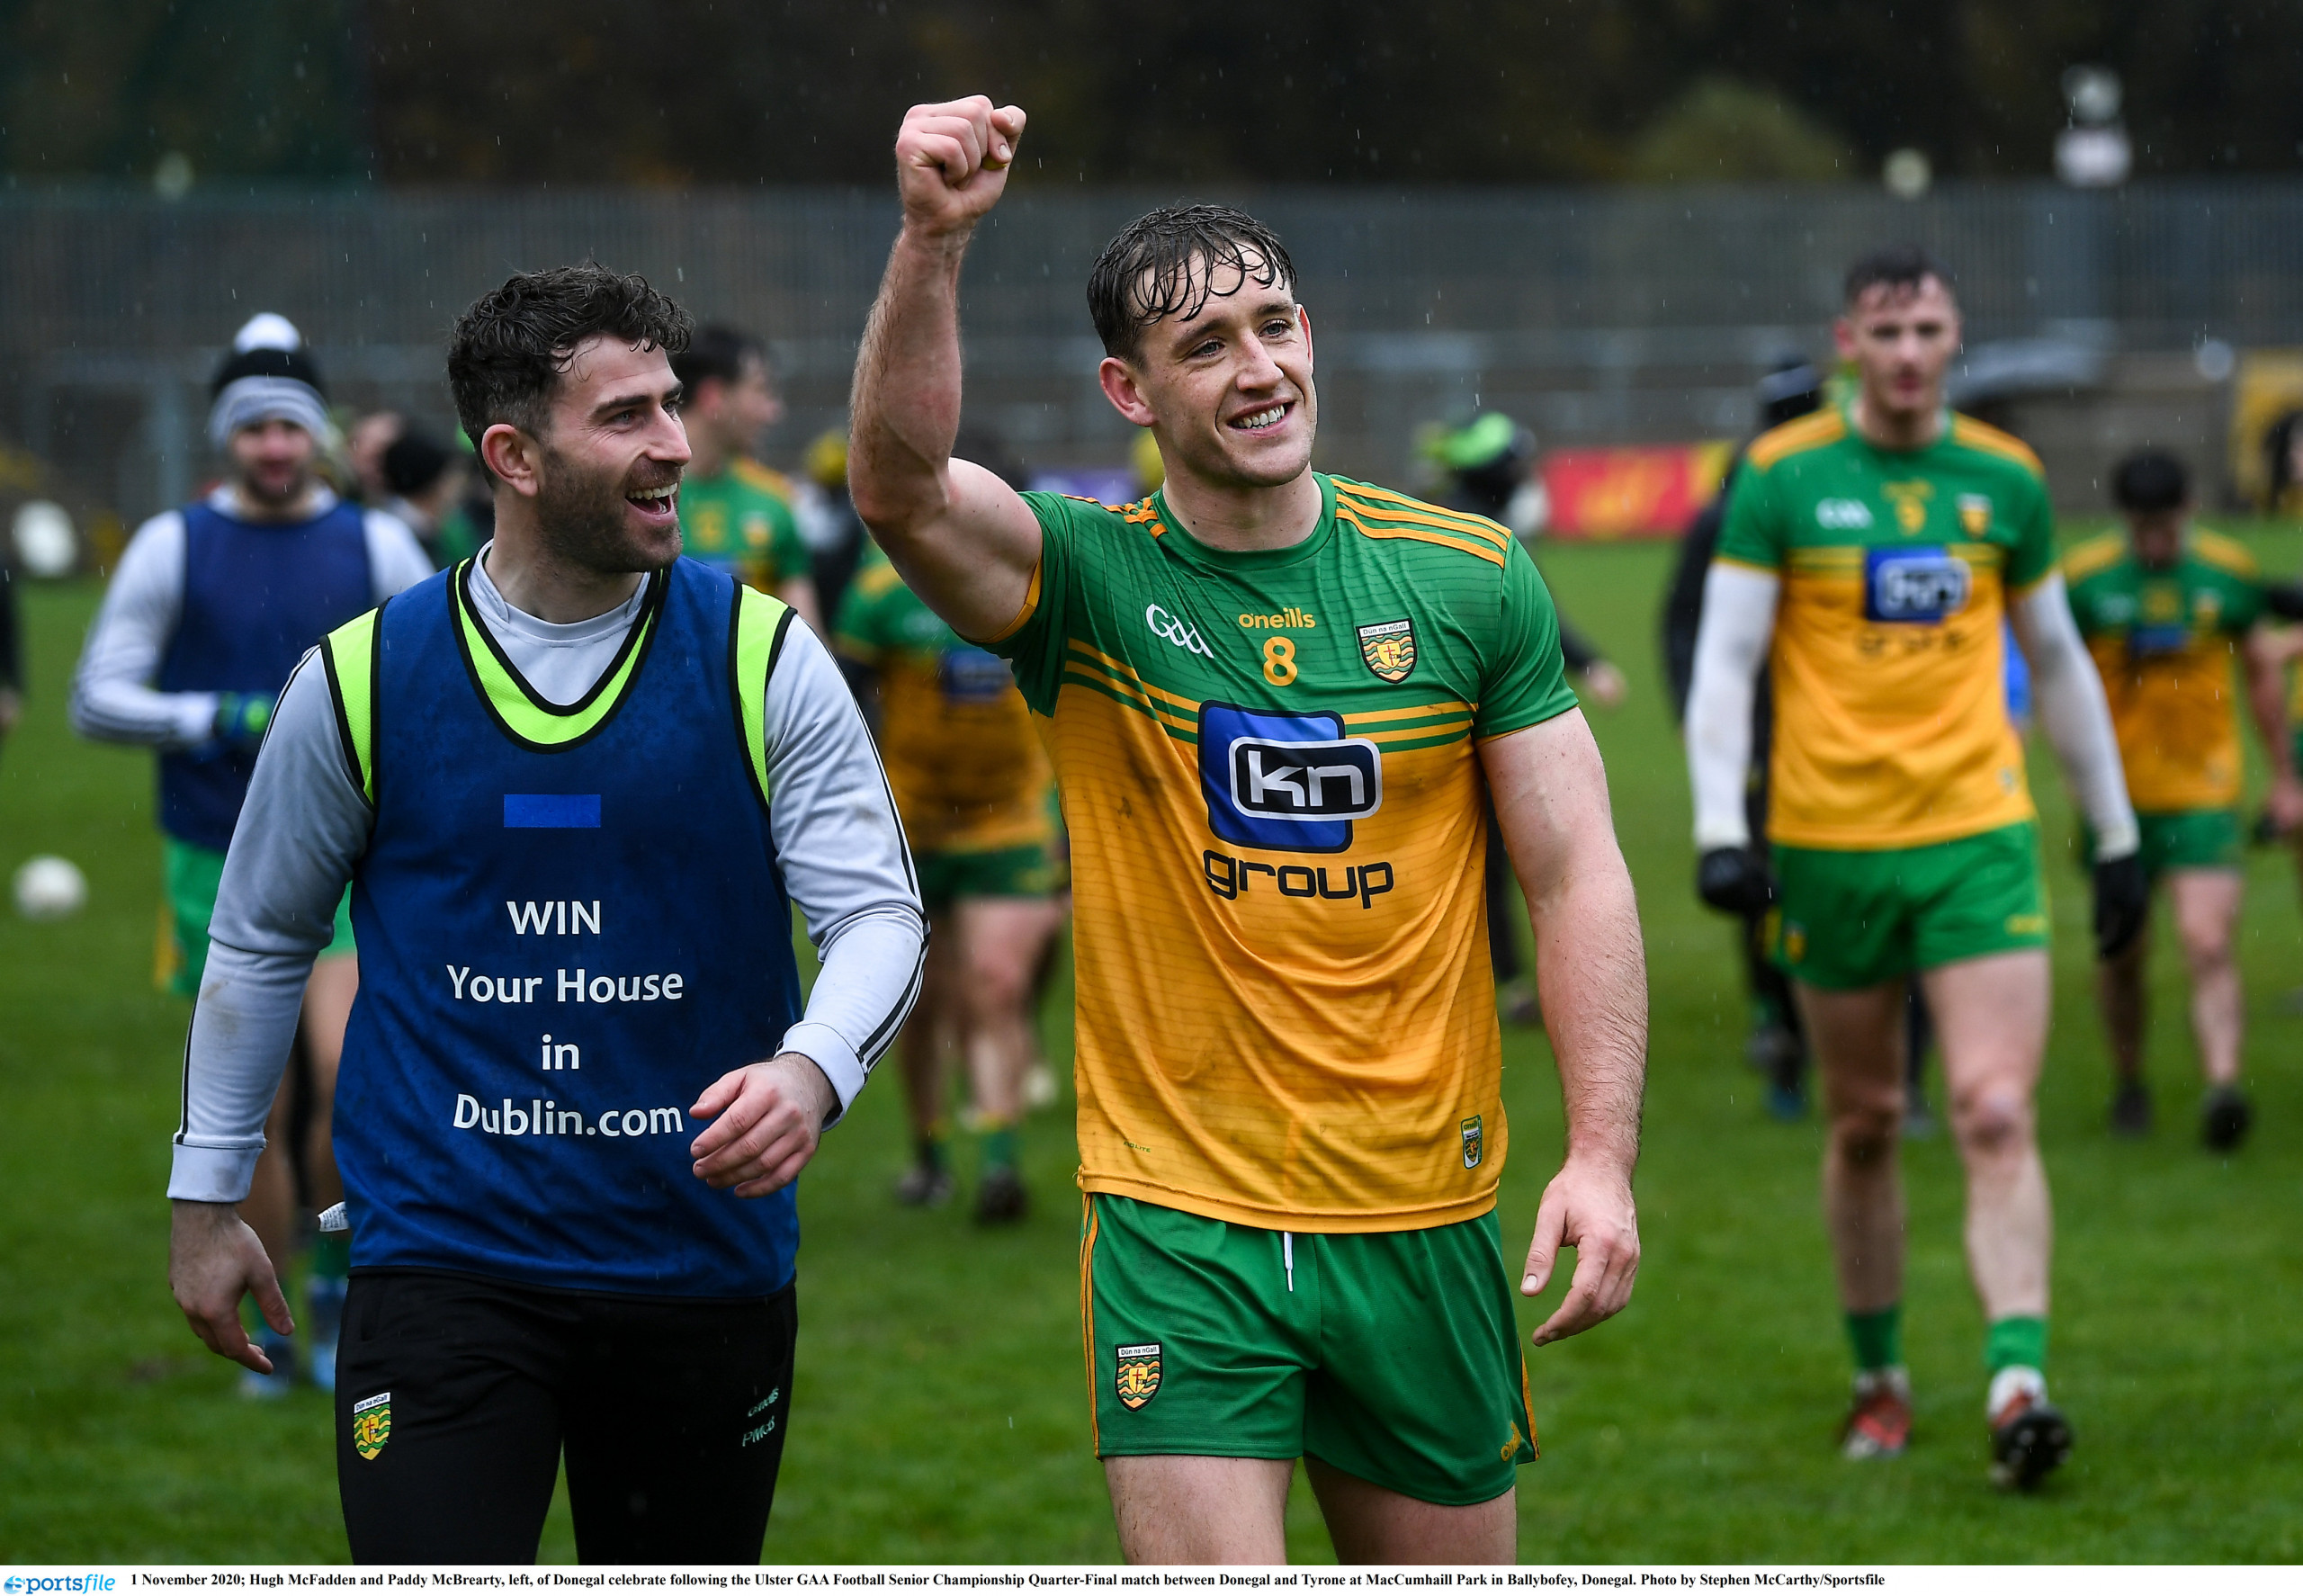 REPORT: Hard-fought win sees Donegal progress